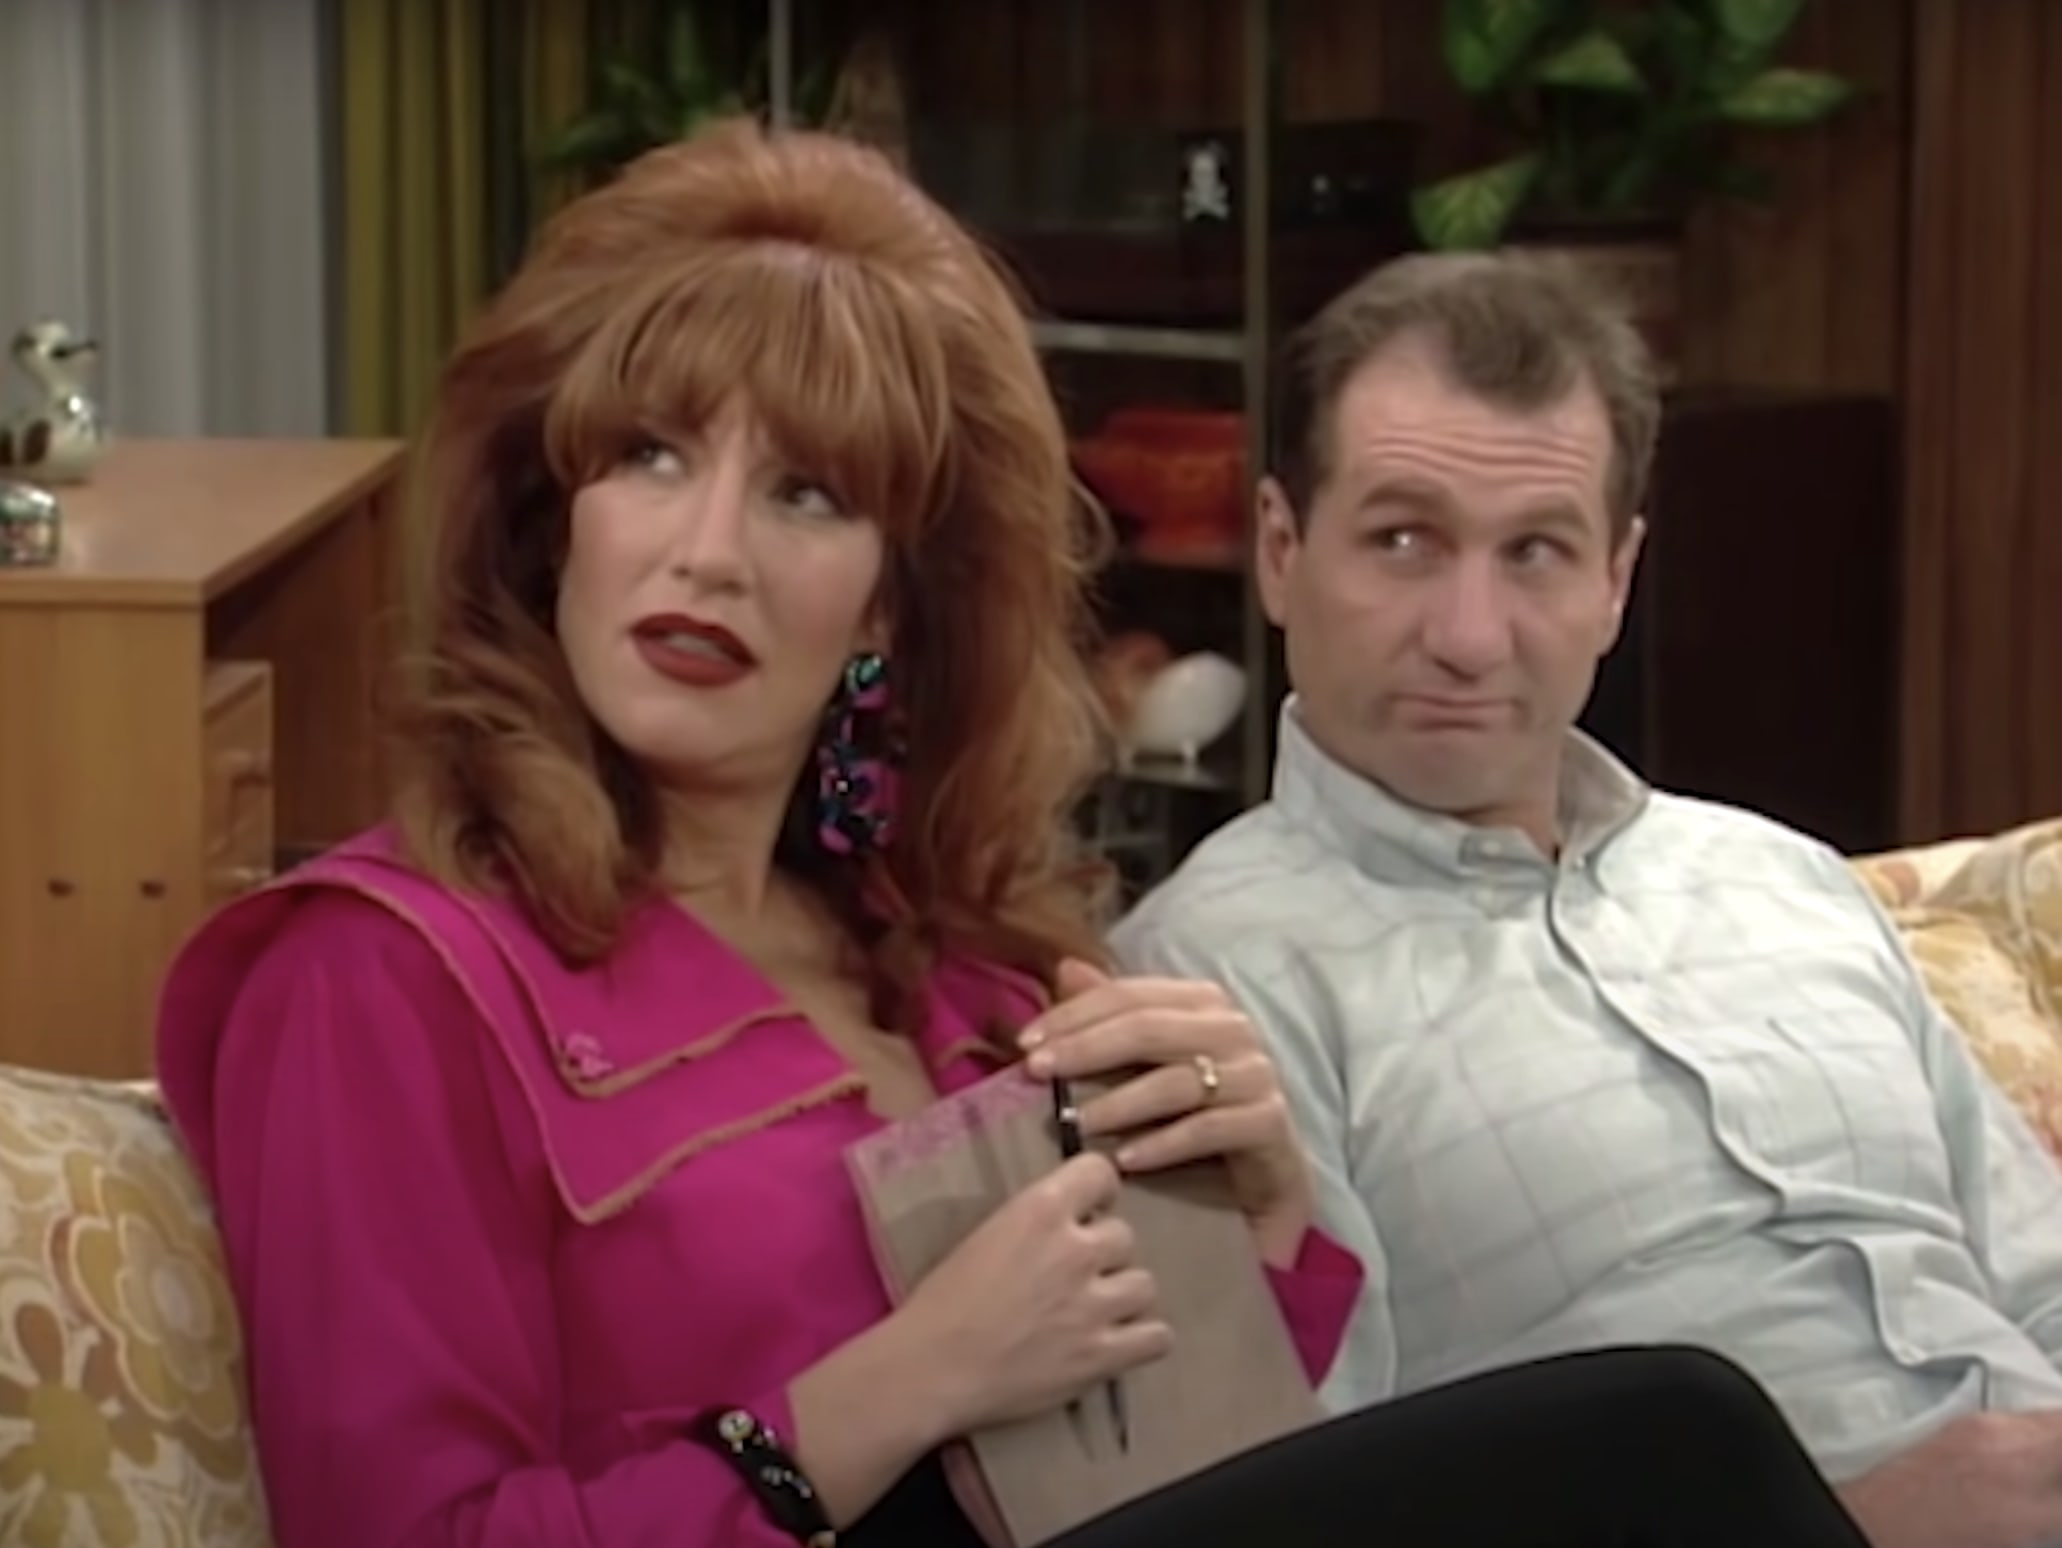 Al Bundy and Peggy sitting on the couch